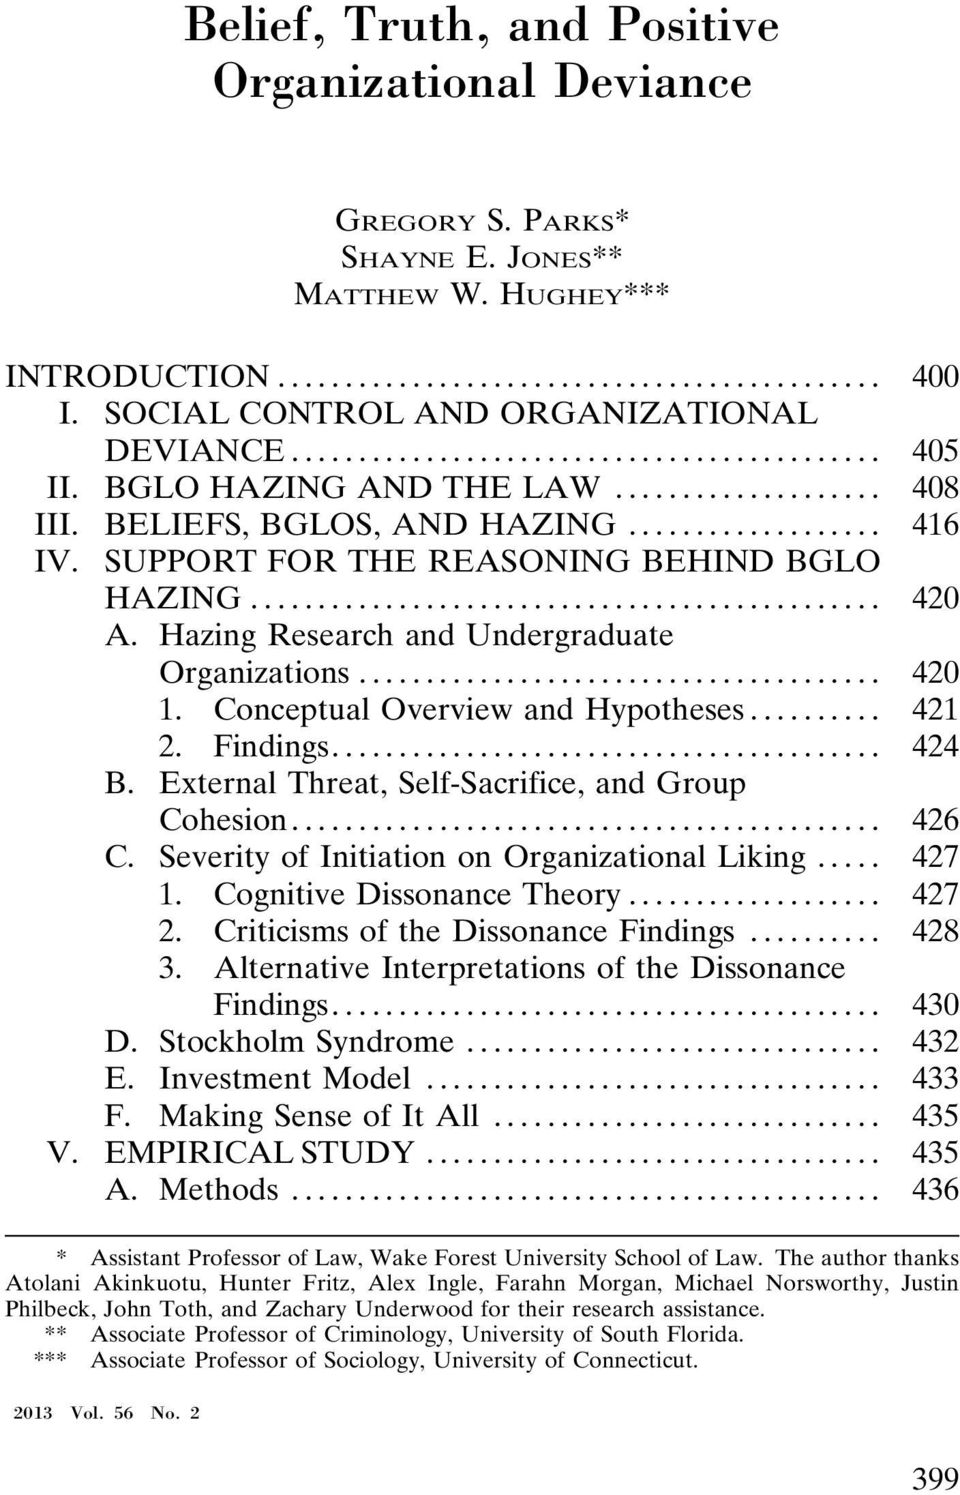 Conceptual Overview and Hypotheses... 421 2. Findings... 424 B. External Threat, Self-Sacrifice, and Group Cohesion... 426 C. Severity of Initiation on Organizational Liking... 427 1.